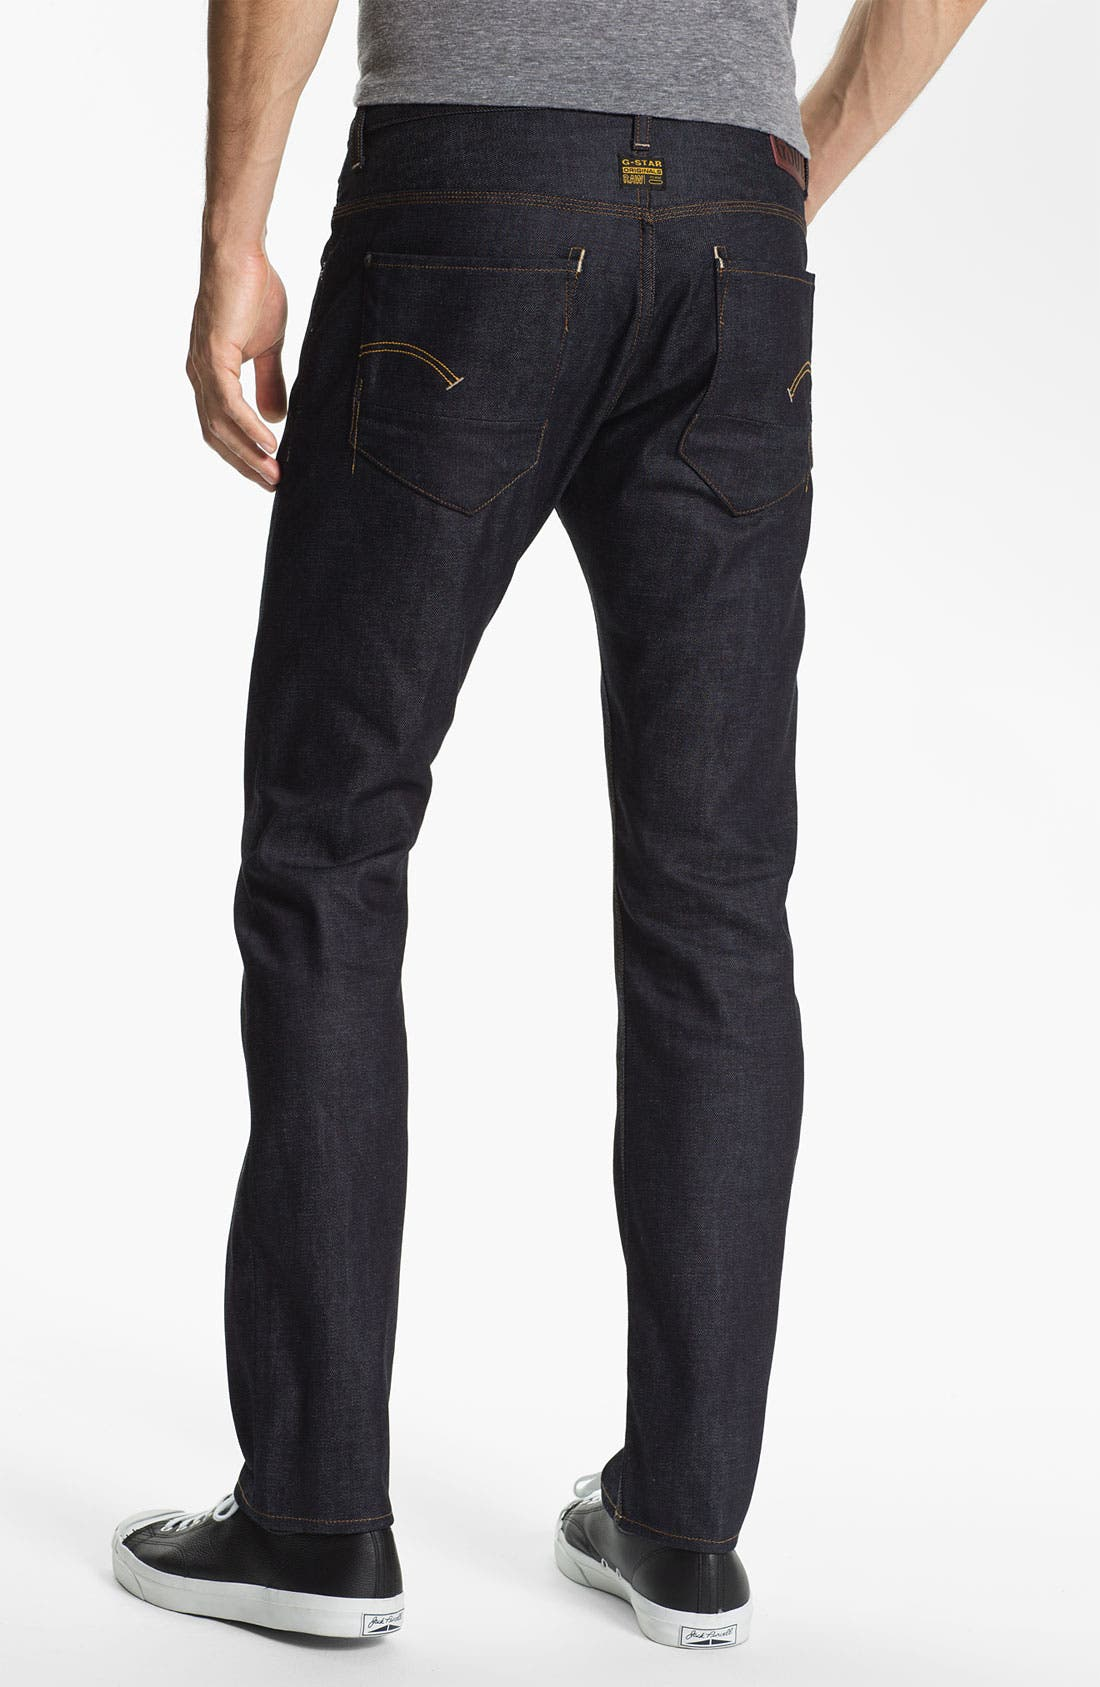 Main Image - G-Star Raw 'New Radar' Slim Straight Leg Jeans (Rigid Raw)